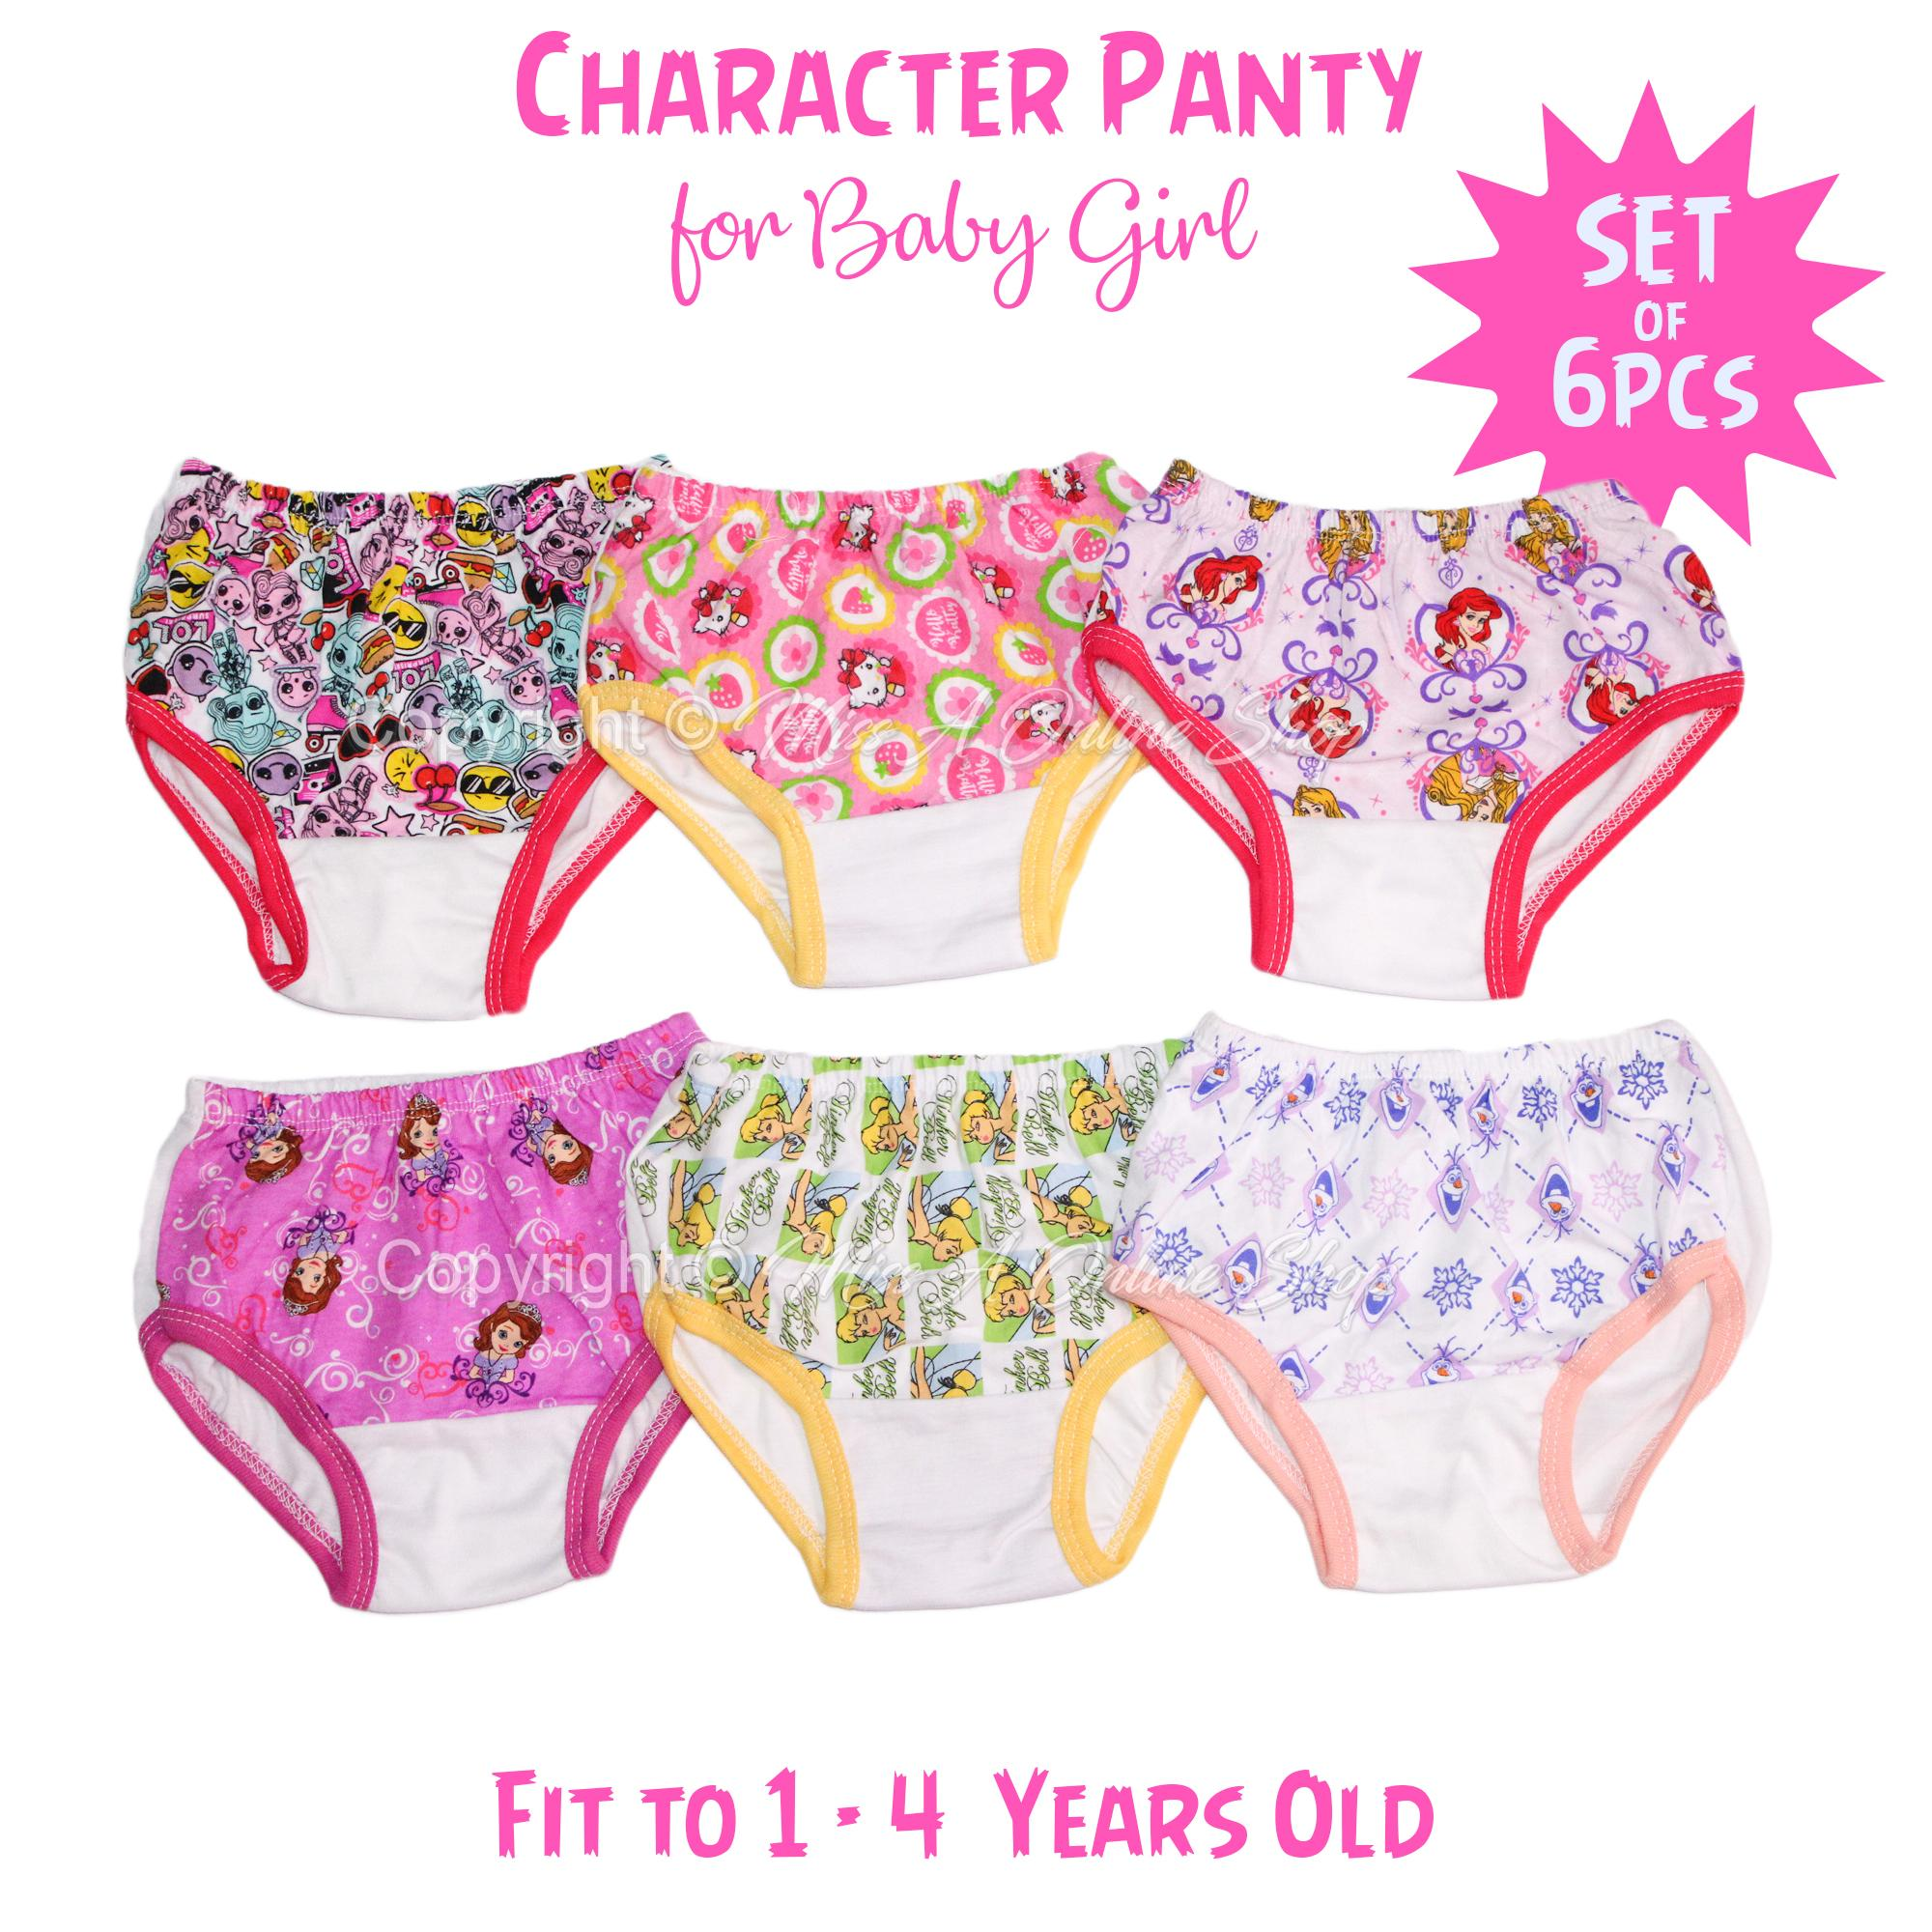 Character Panty For Kids 1-4 Years Old (6 Pieces) By Miss A Online Shop.